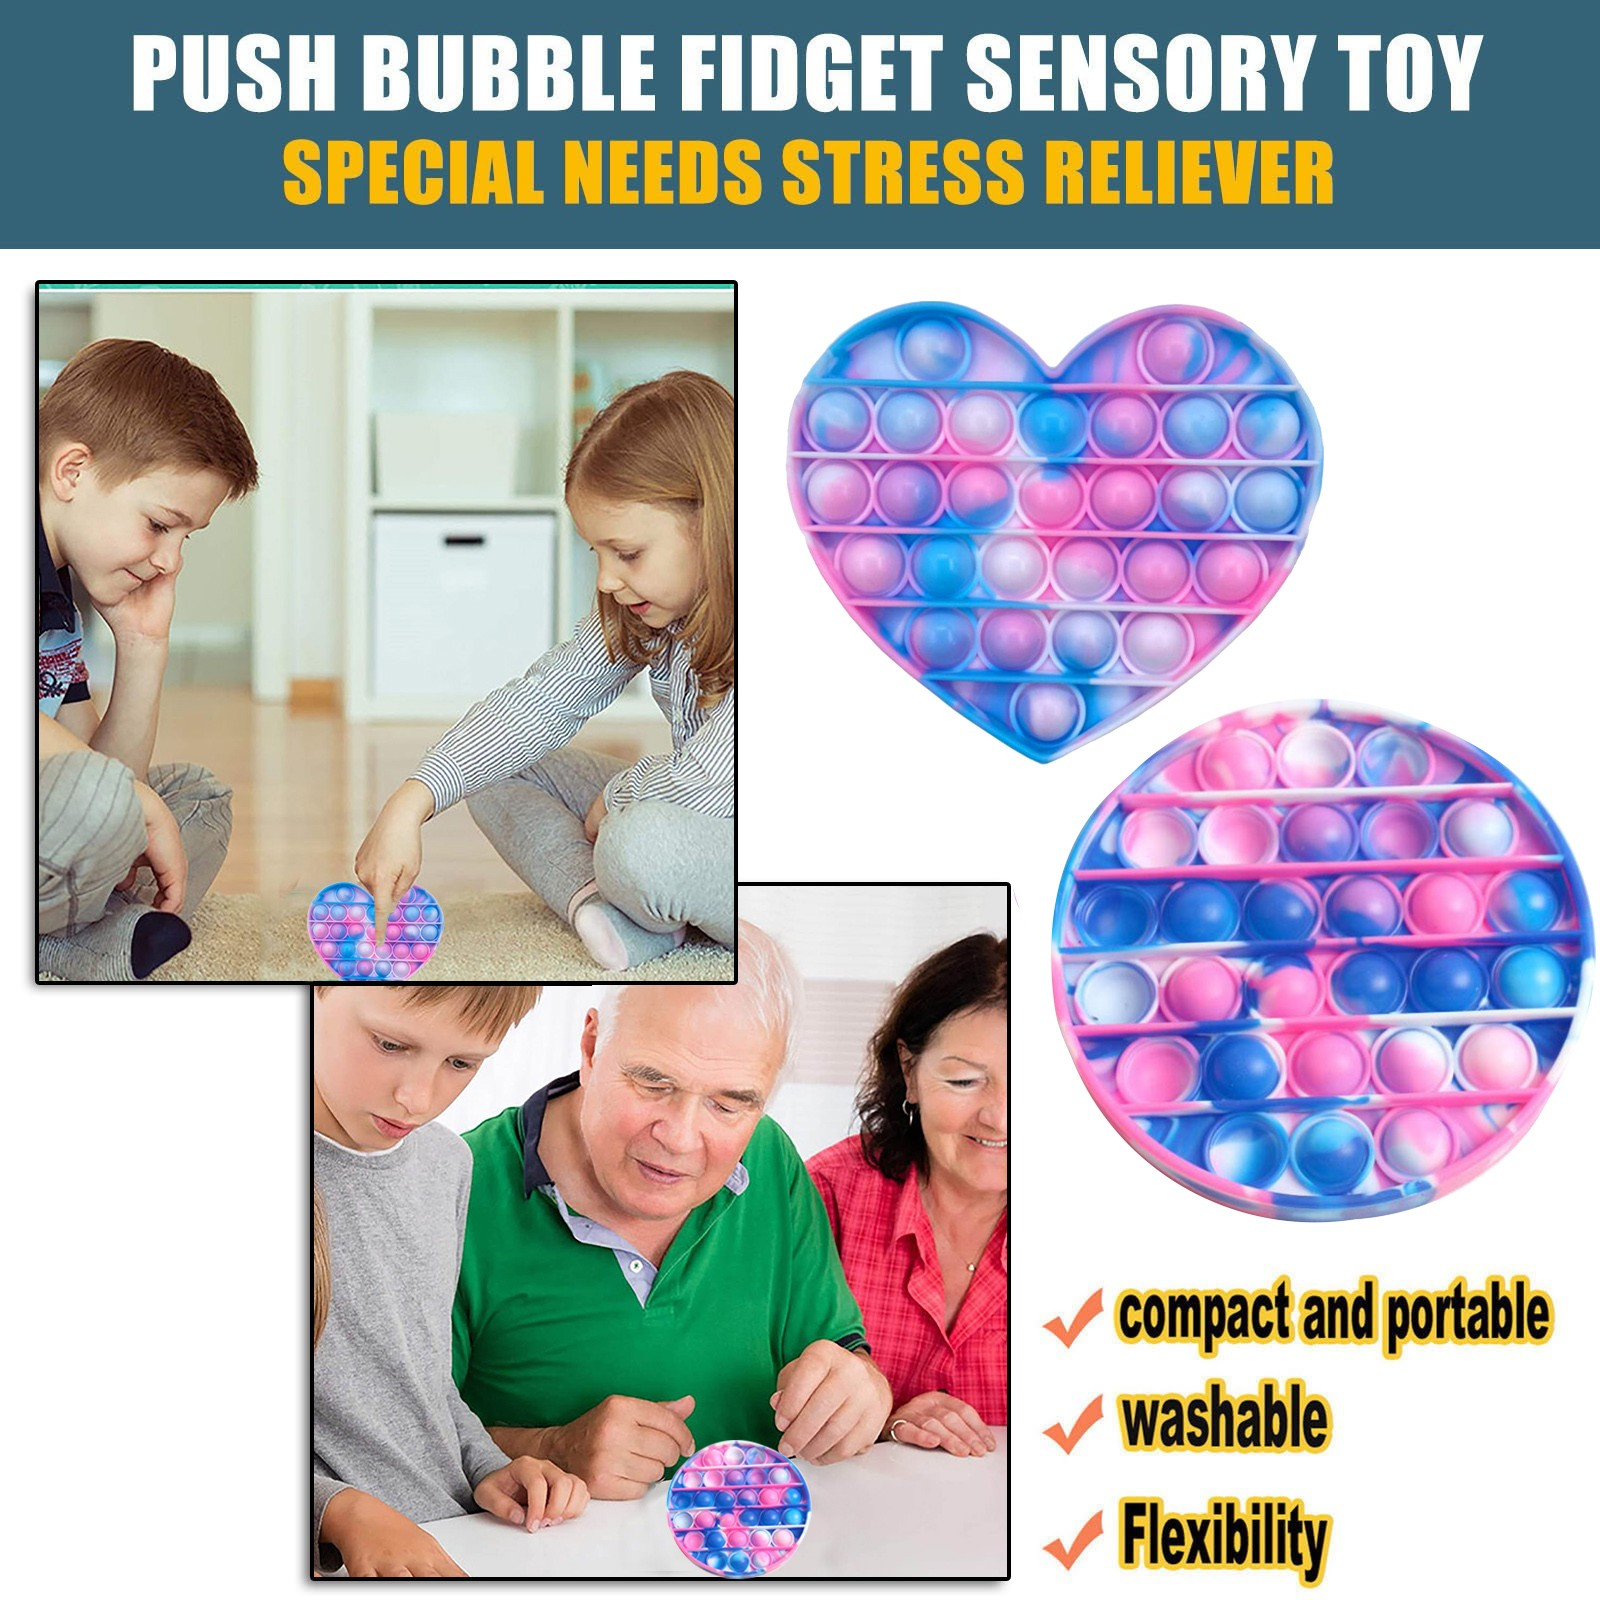 Funny Fidget Toys Simple Dimple Poppit Toy Bubble Sensory Toy For Adult Kids Stress Reliever Autism Gift ?????????? ???? Drop